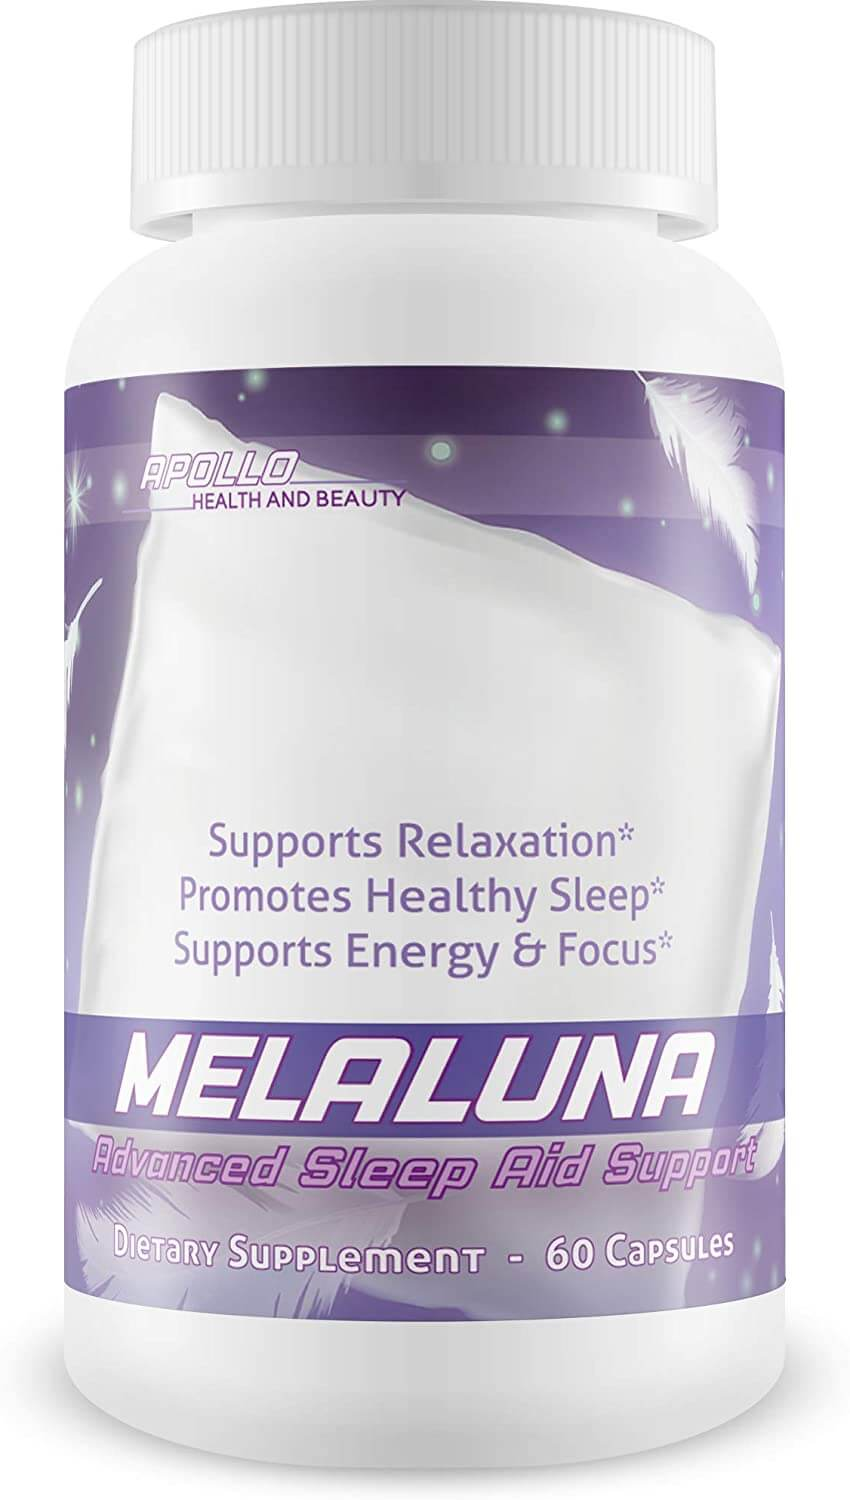 Mela luna sleep aid